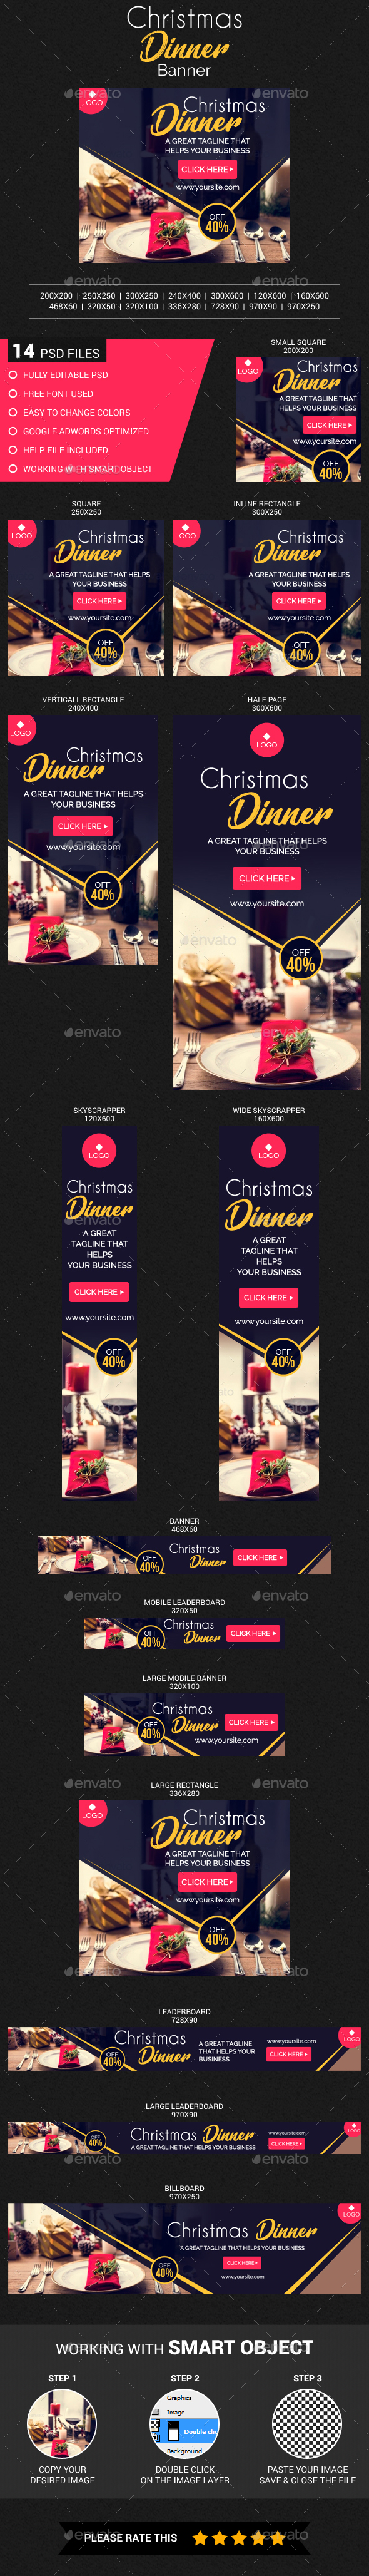 Christmas Dinner Banner - Banners & Ads Web Elements